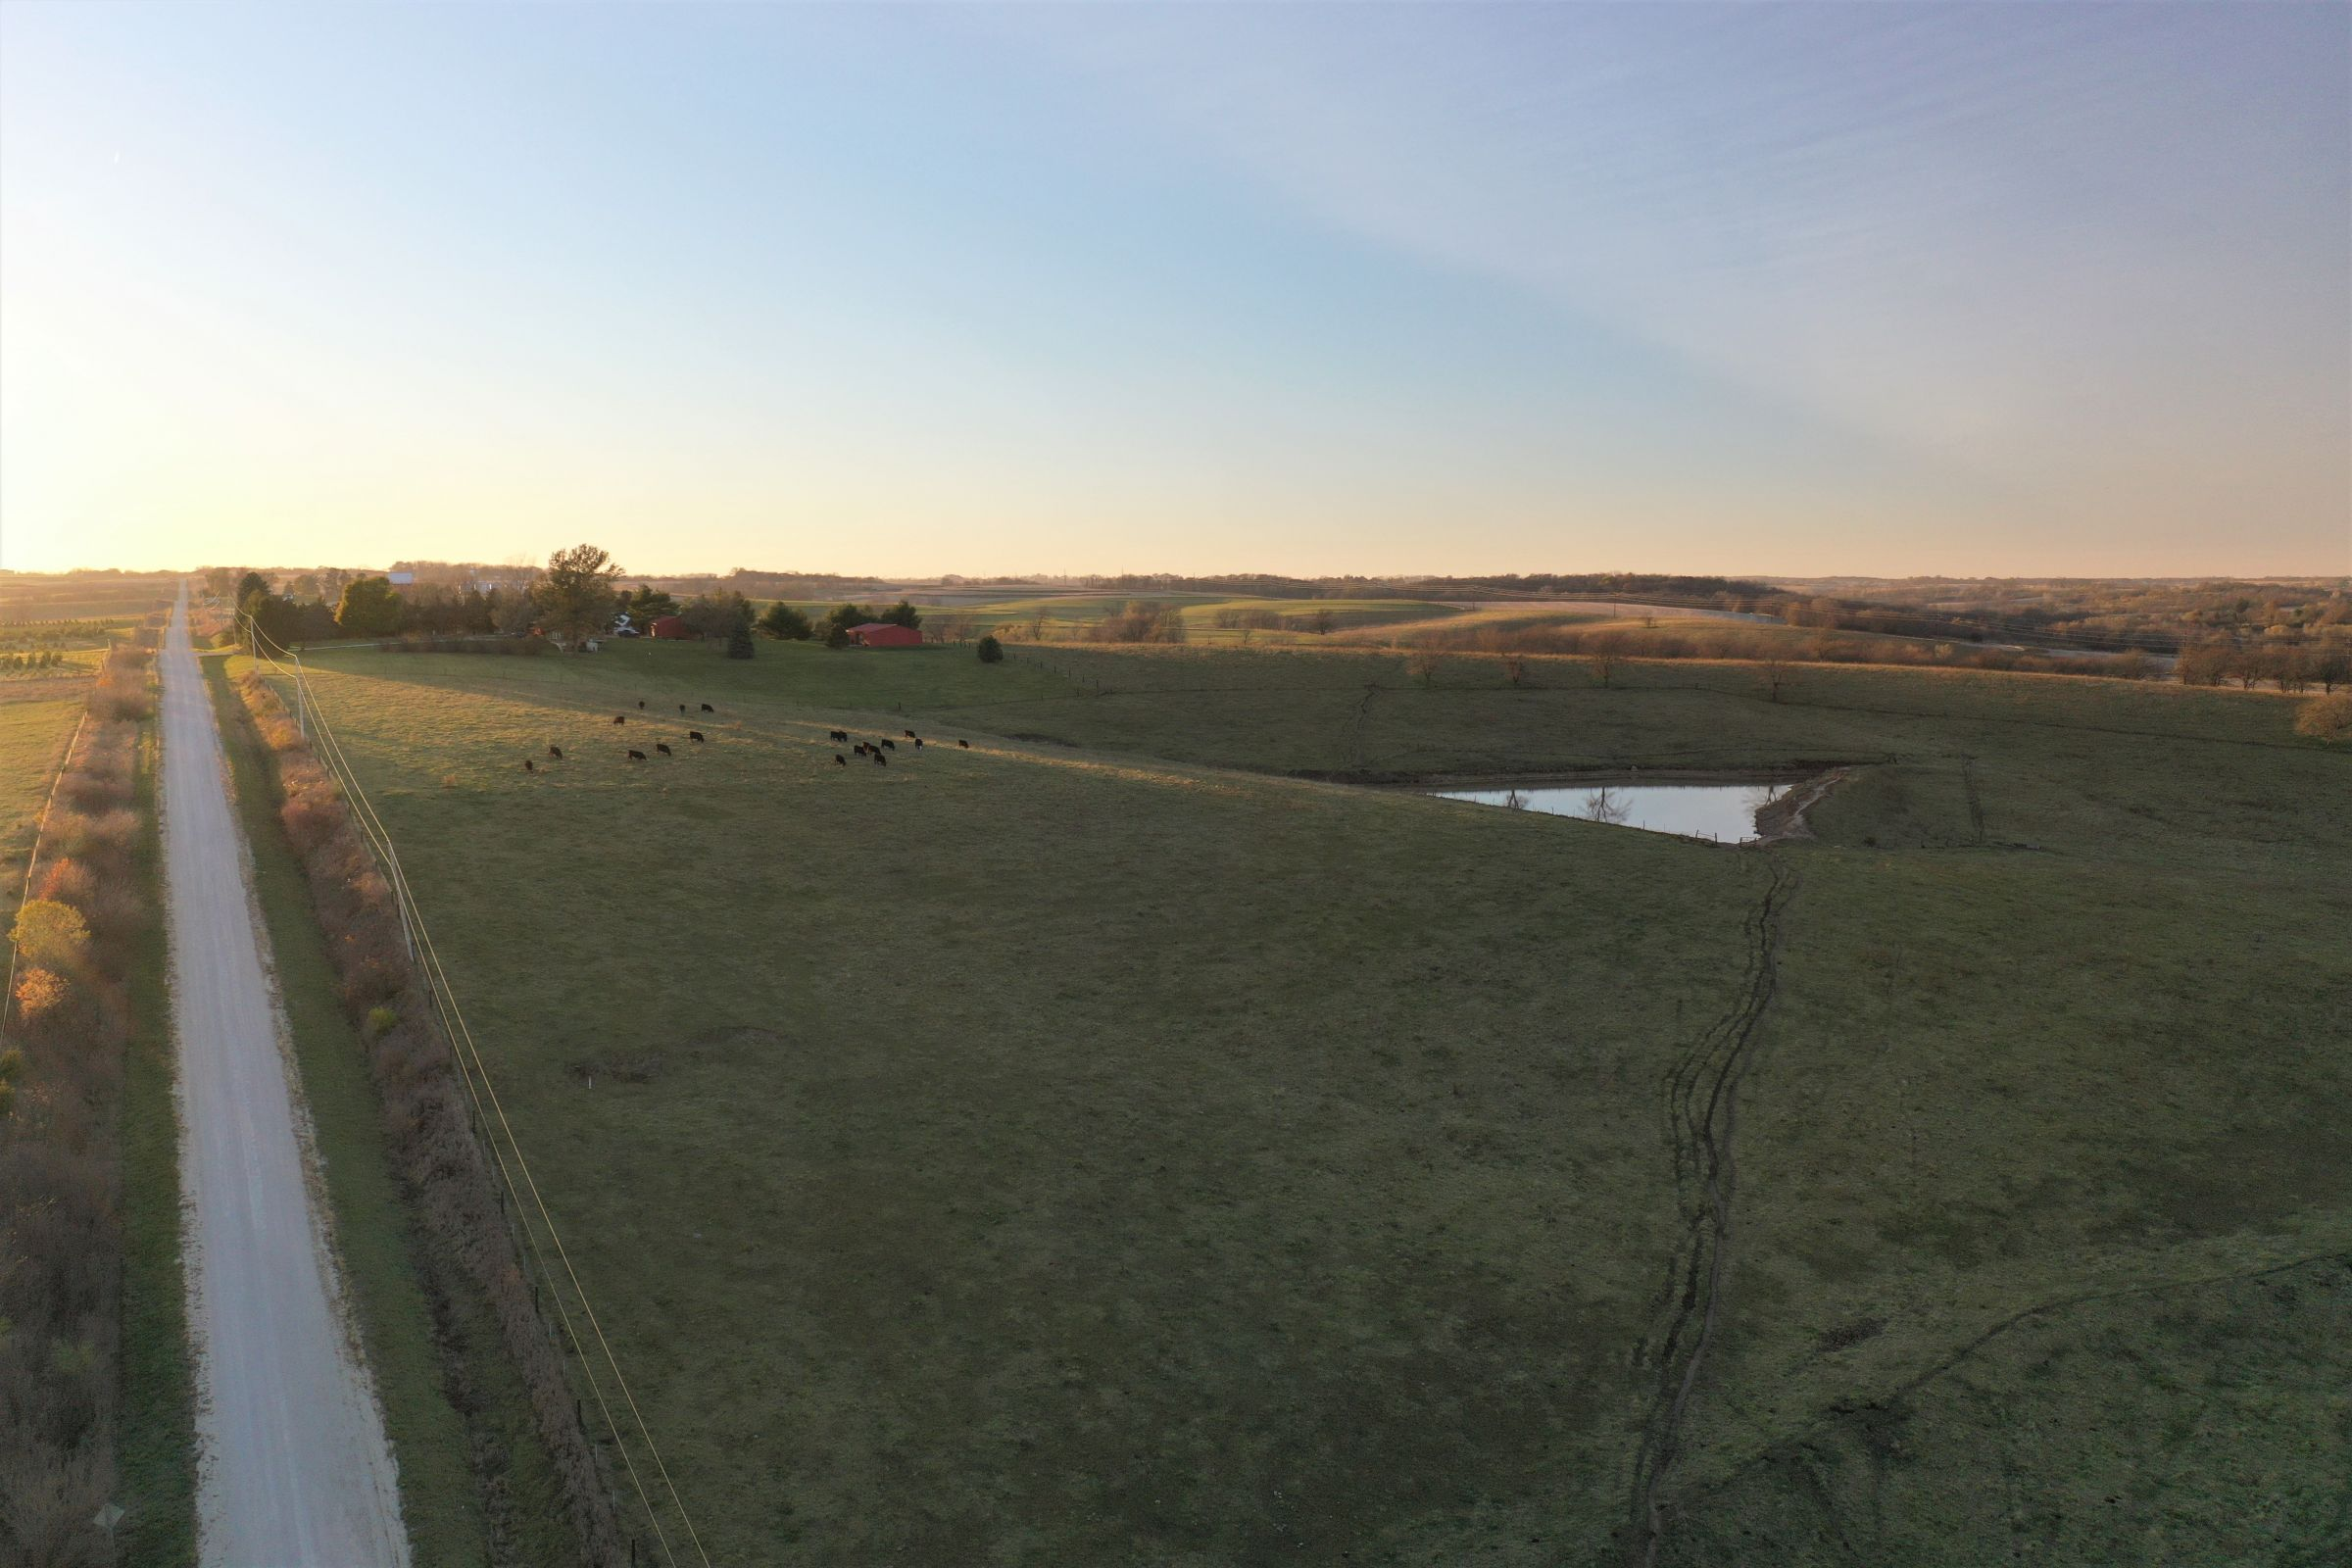 land-madison-county-iowa-40-acres-listing-number-15236-1-2020-11-05-044816.jpg